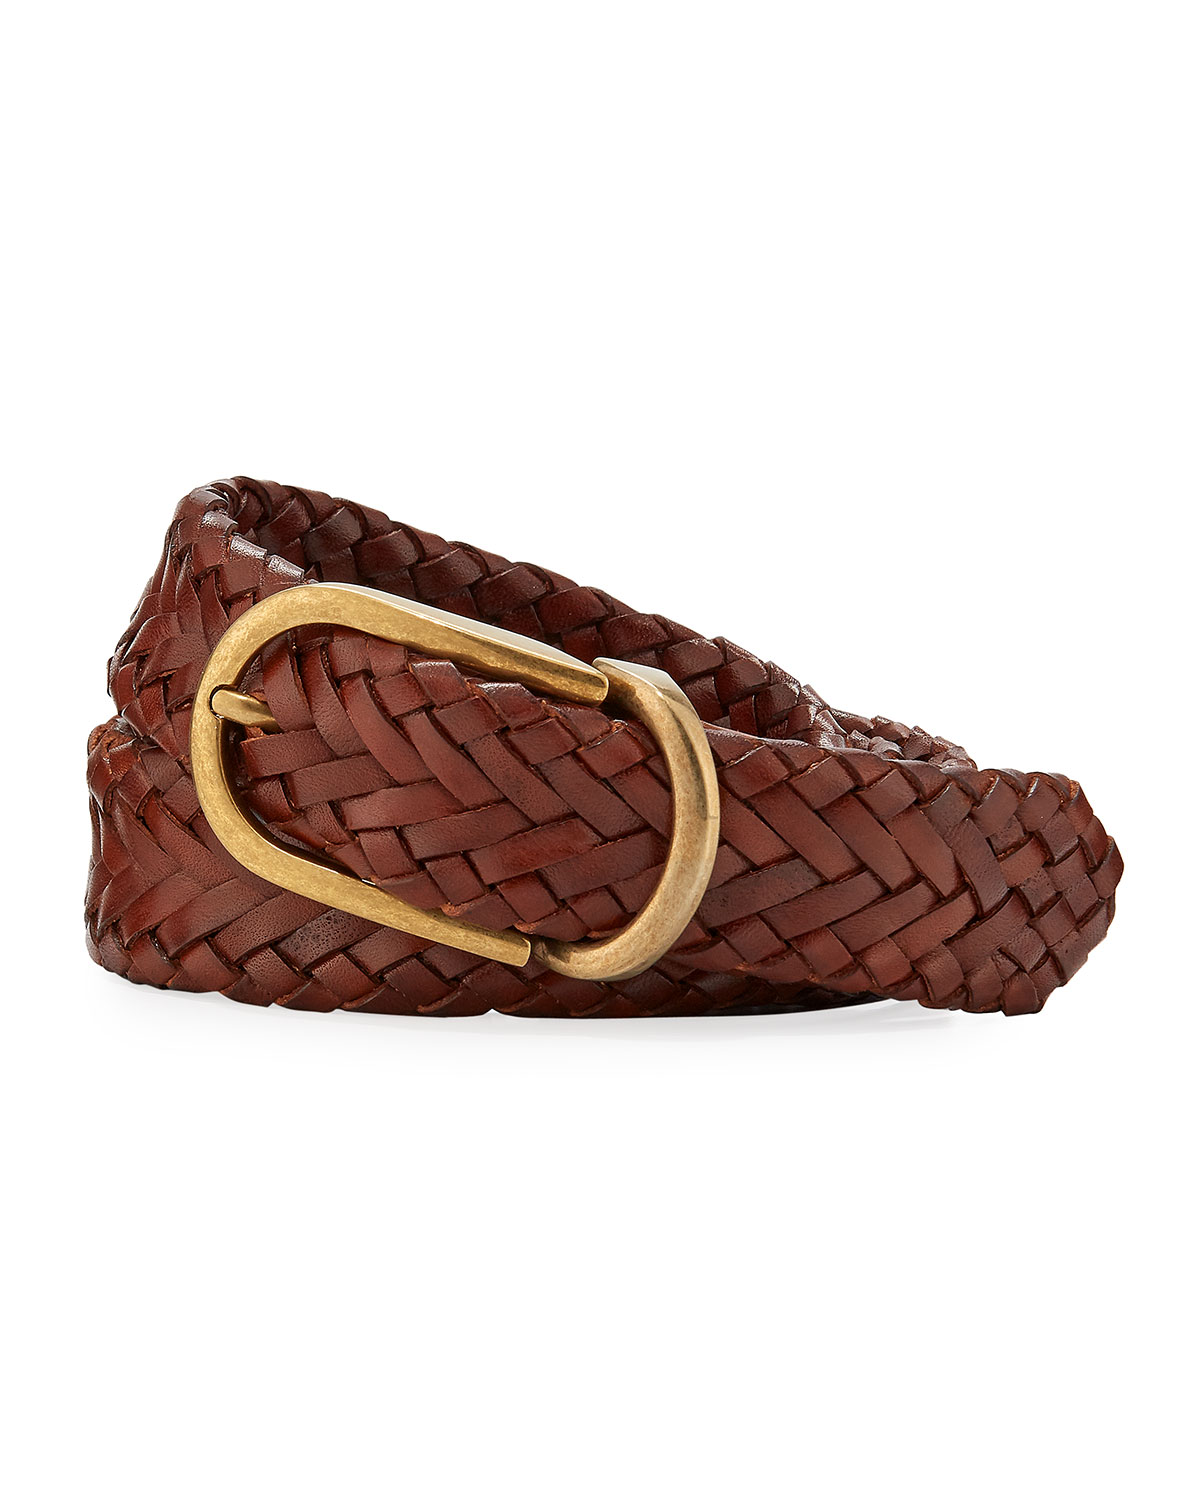 Brunello Cucinelli Men's Brown Braided Leather Belt